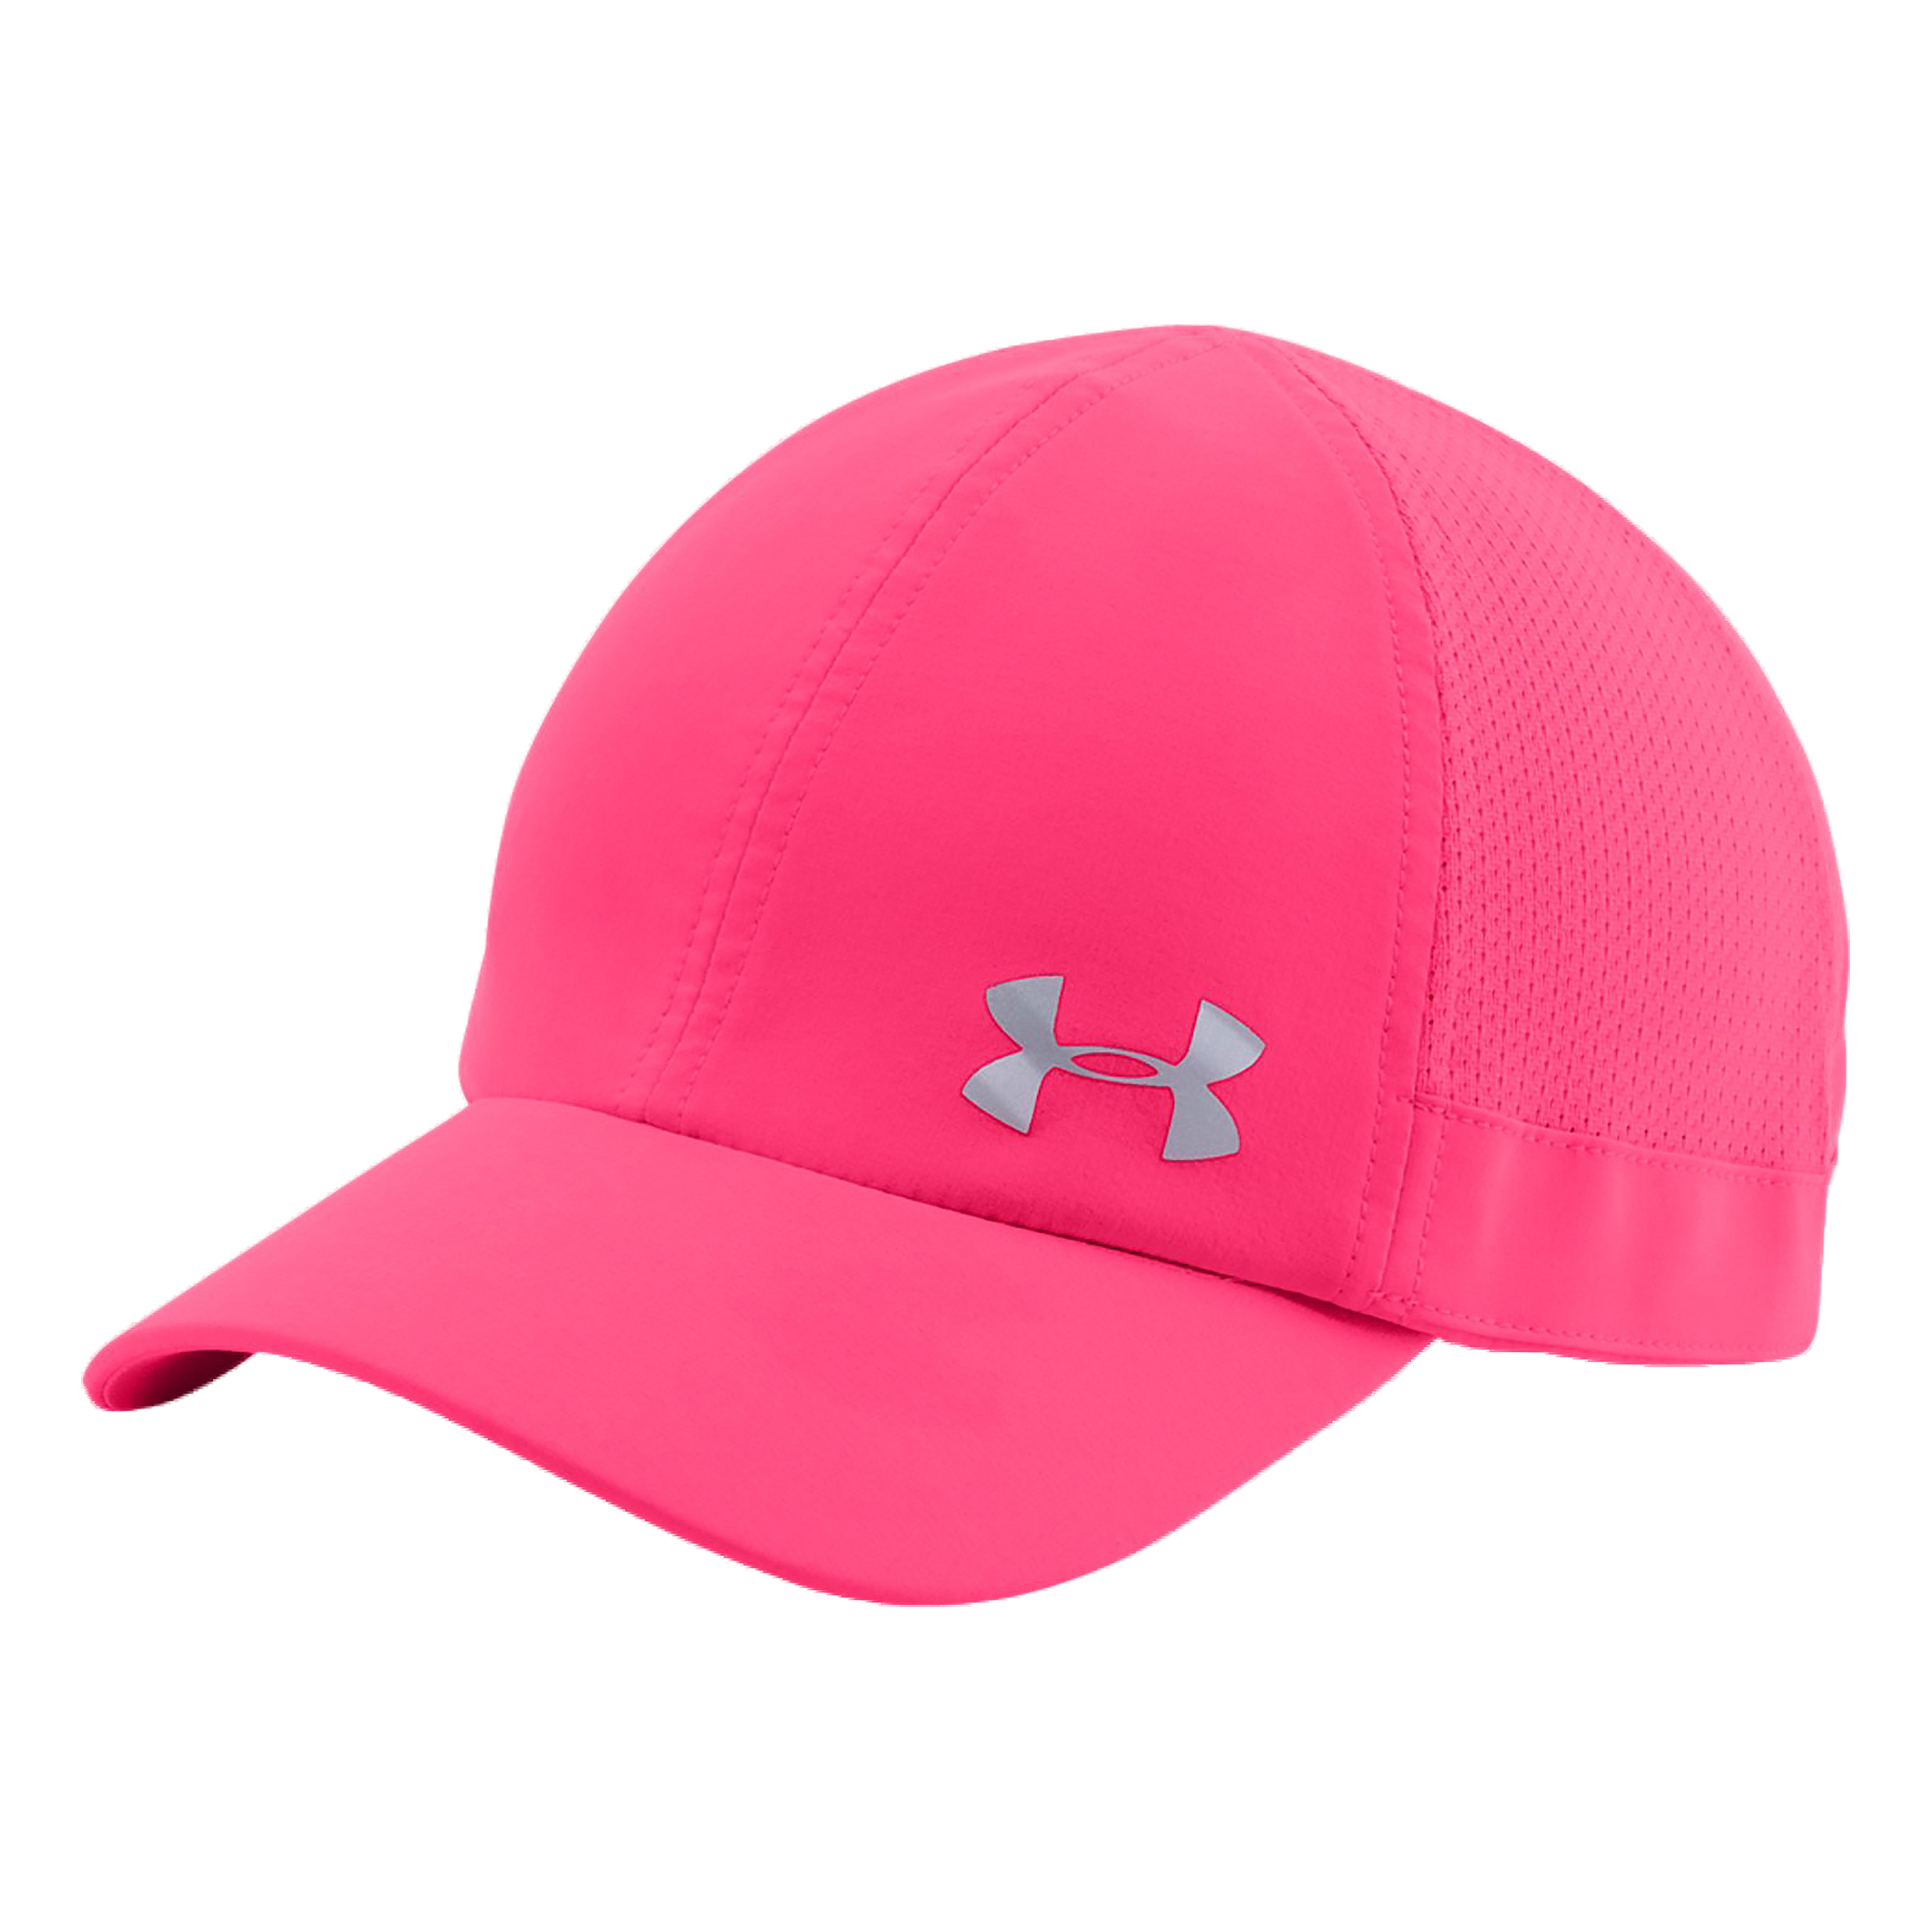 Under Armour Women Fly Fast Cap pink